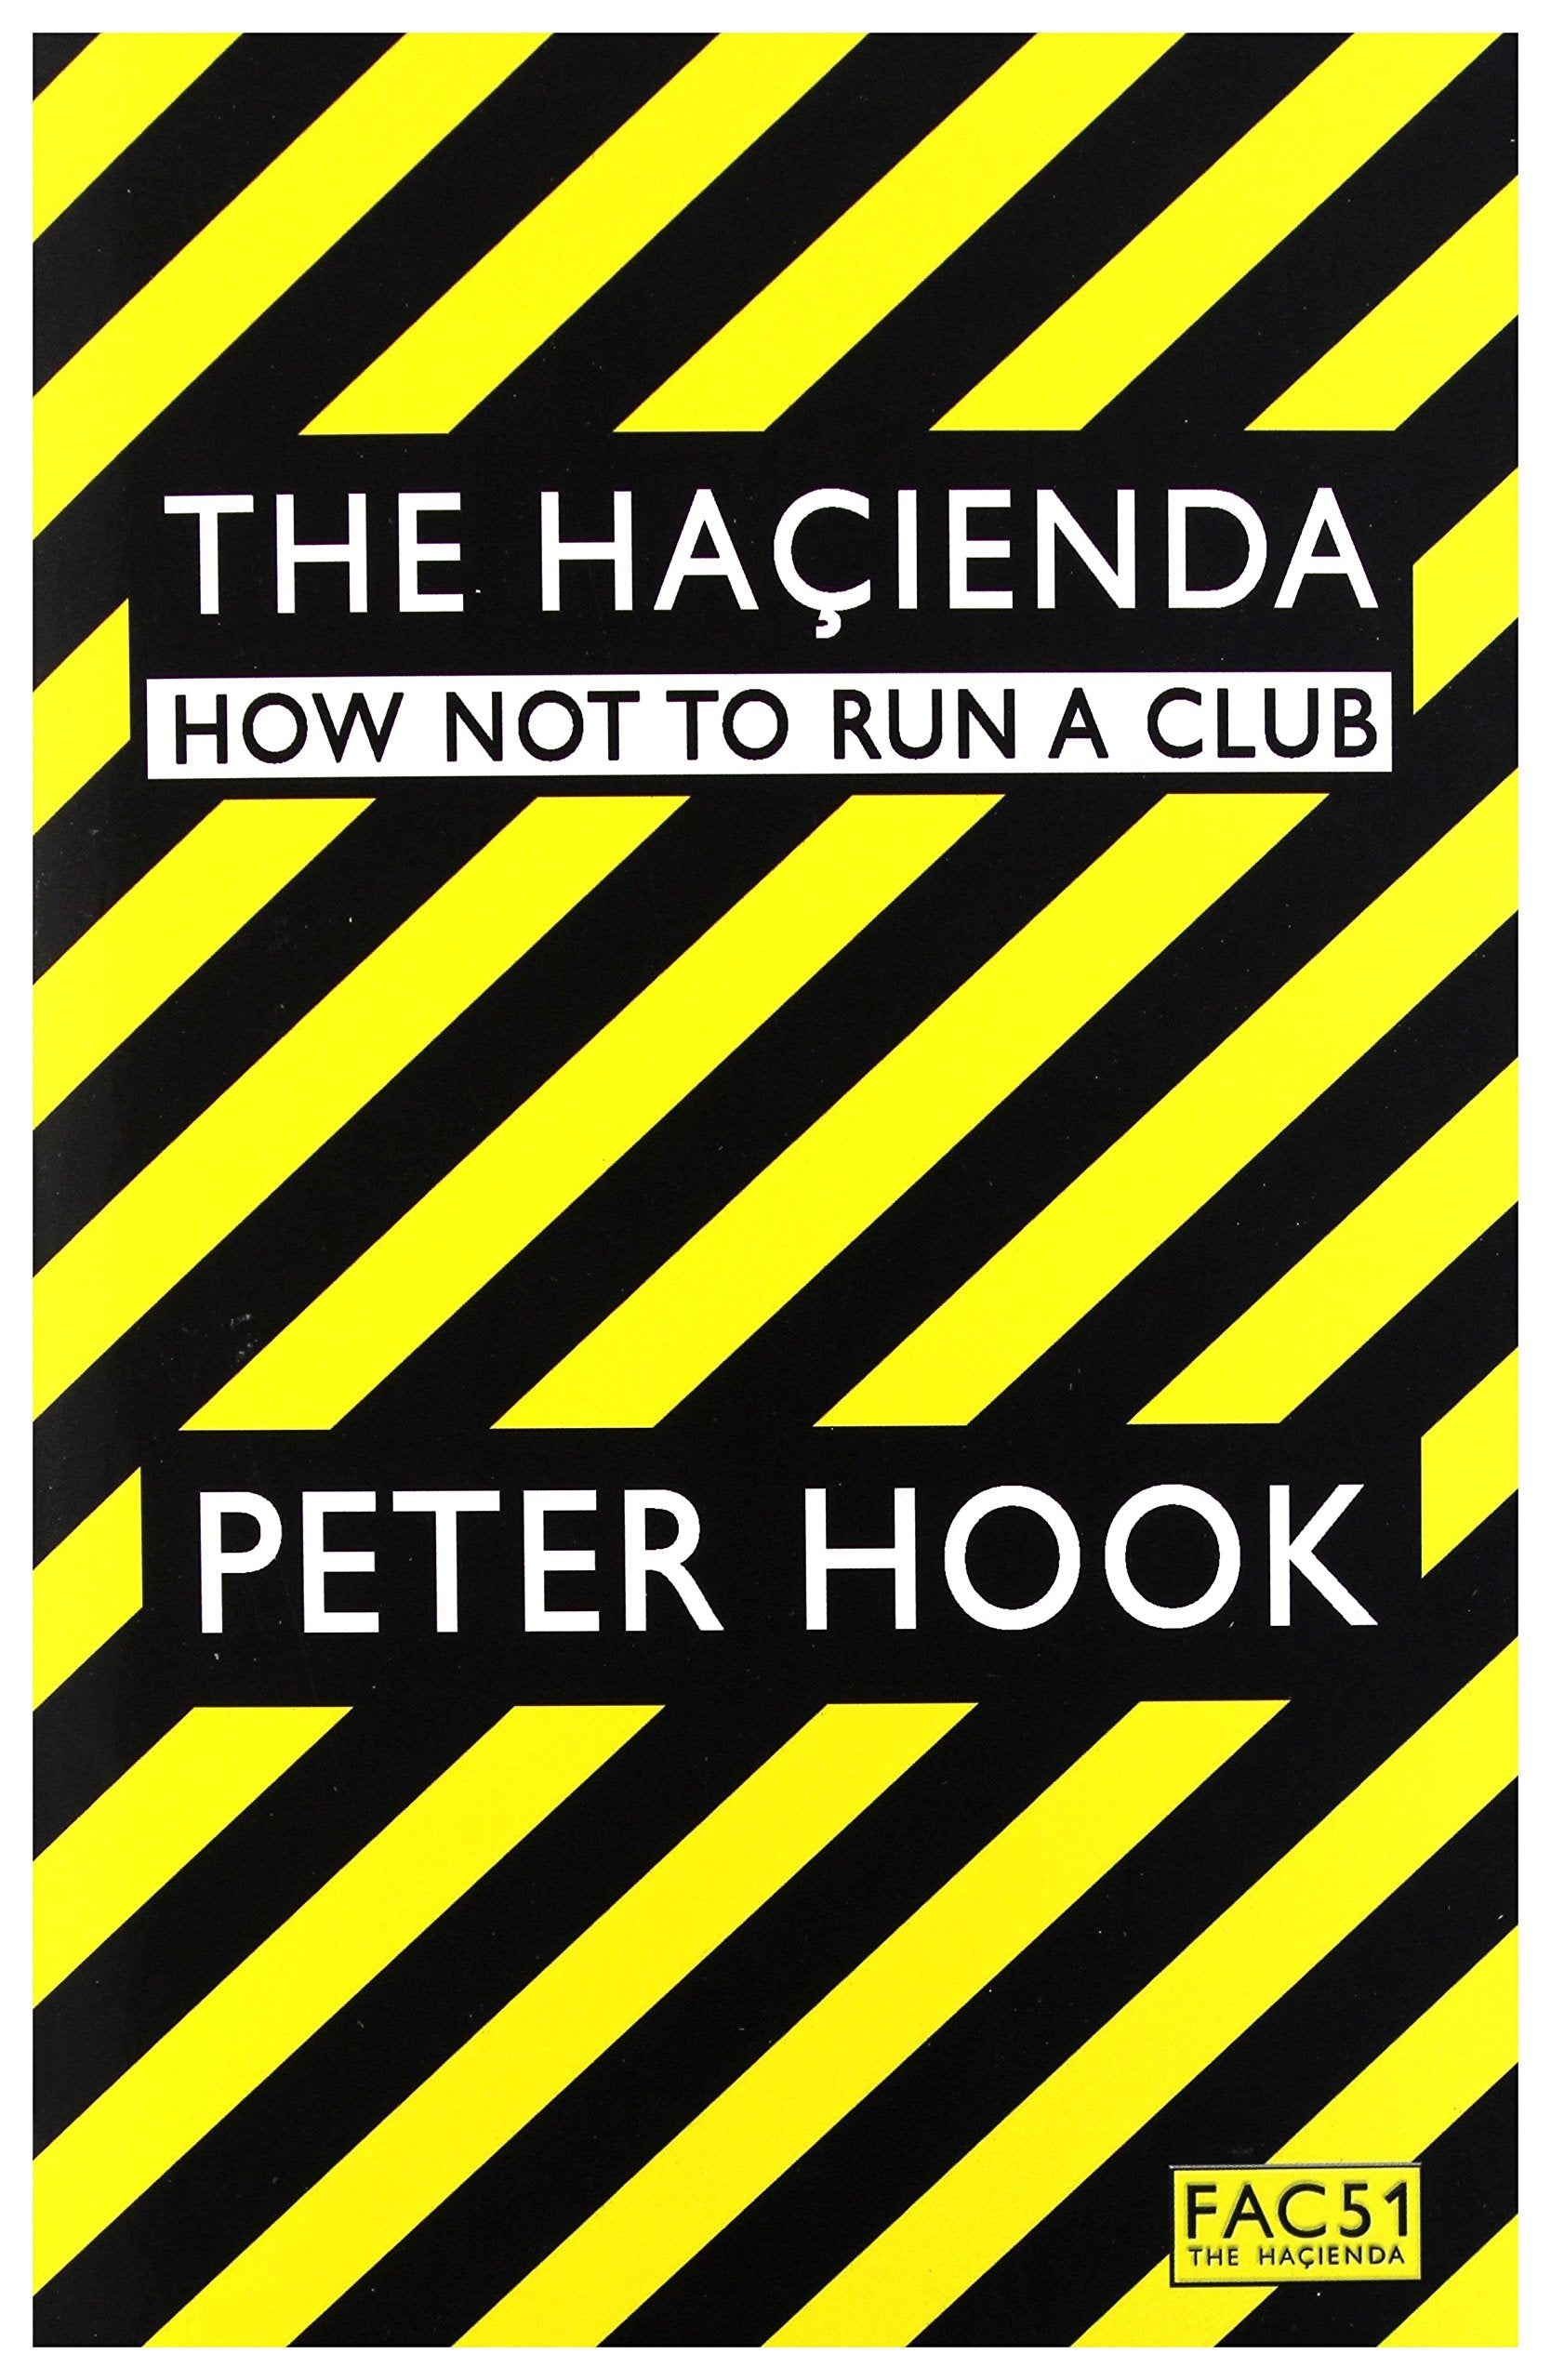 The Hacienda: How Not To Run a Club - Peter Hook [BOOK]